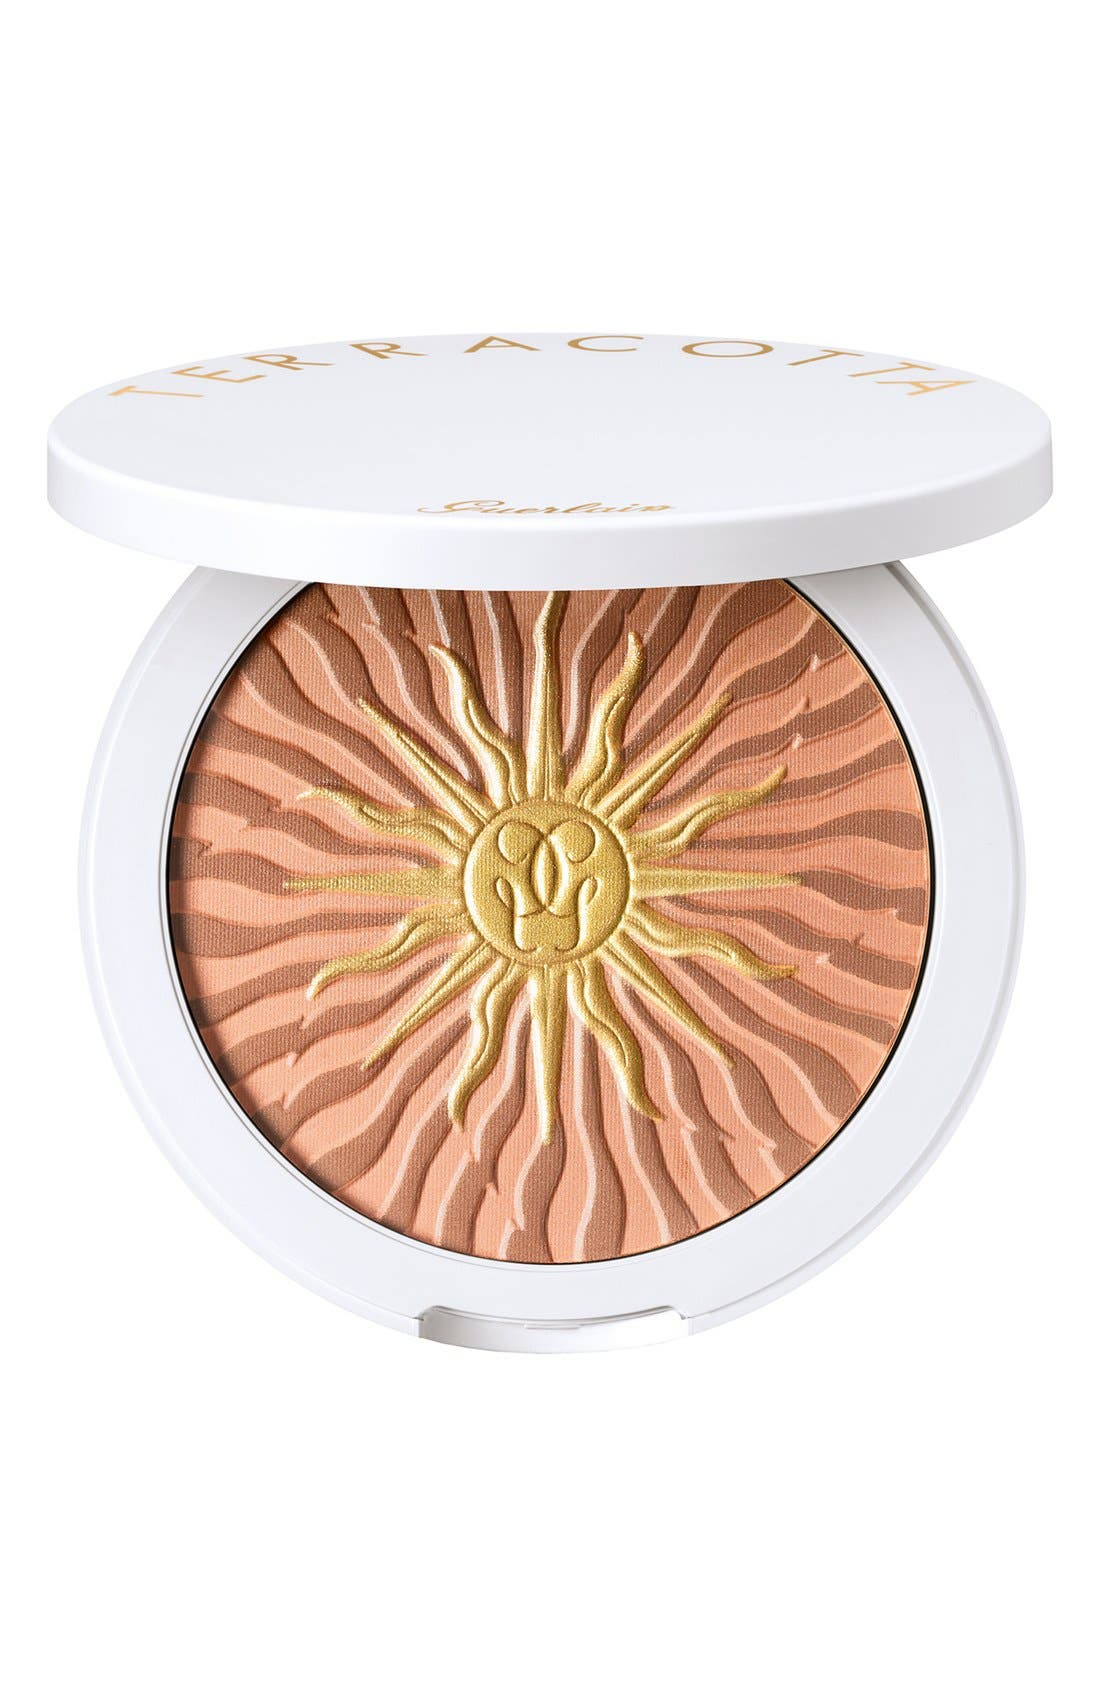 GUERLAIN 'Terracotta Terre d'Été' Tan-Enhancing Bronzer, Main, color, 000